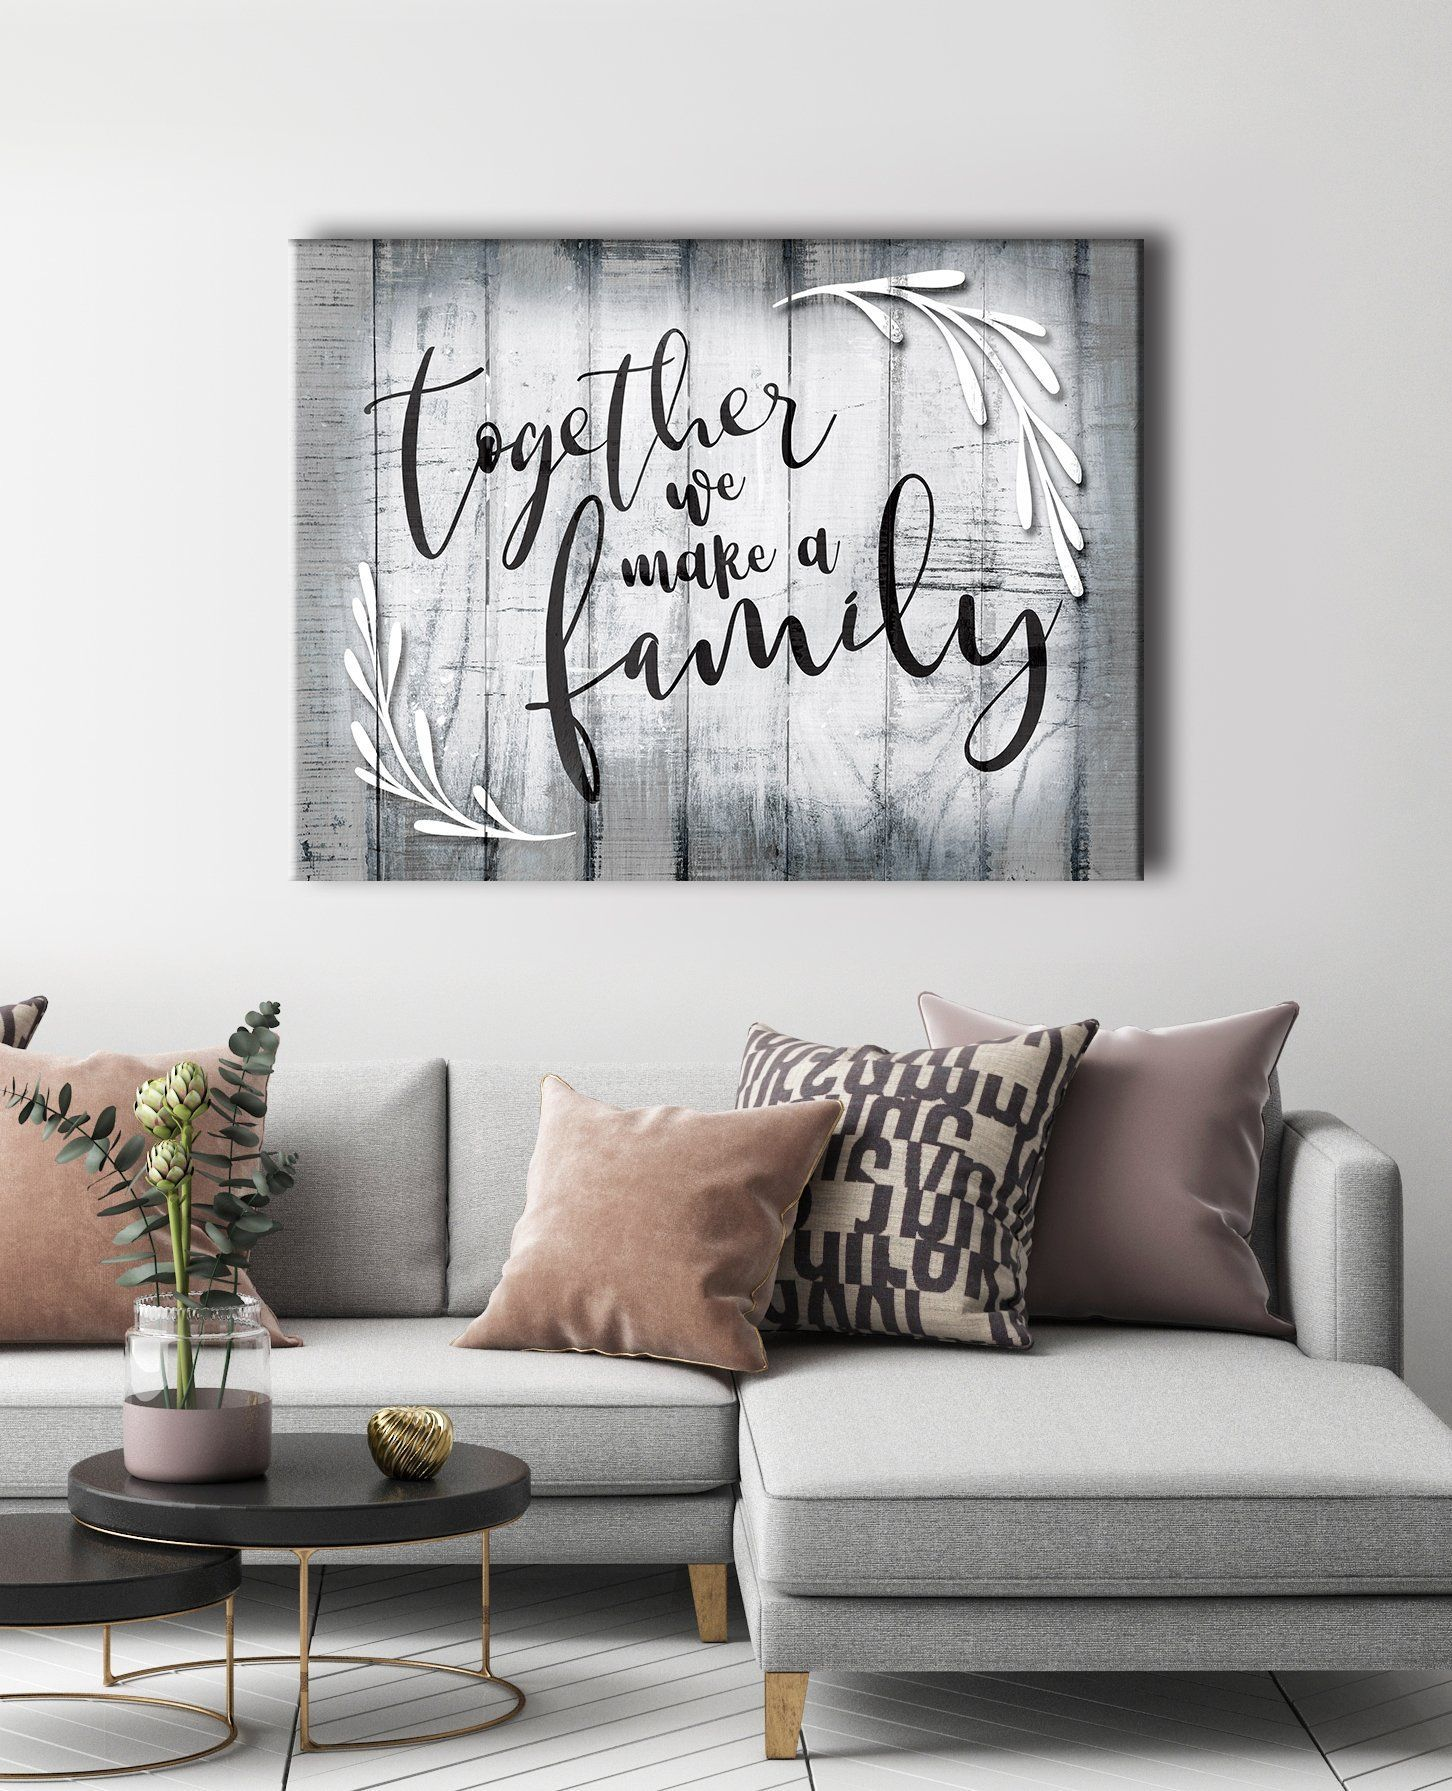 Family Wall Art Together We Make A Family Wood Frame Ready To Hang A Art Family Frame Hang Make Ready In 2020 Family Wall Art Family Wall Decor Family Wall